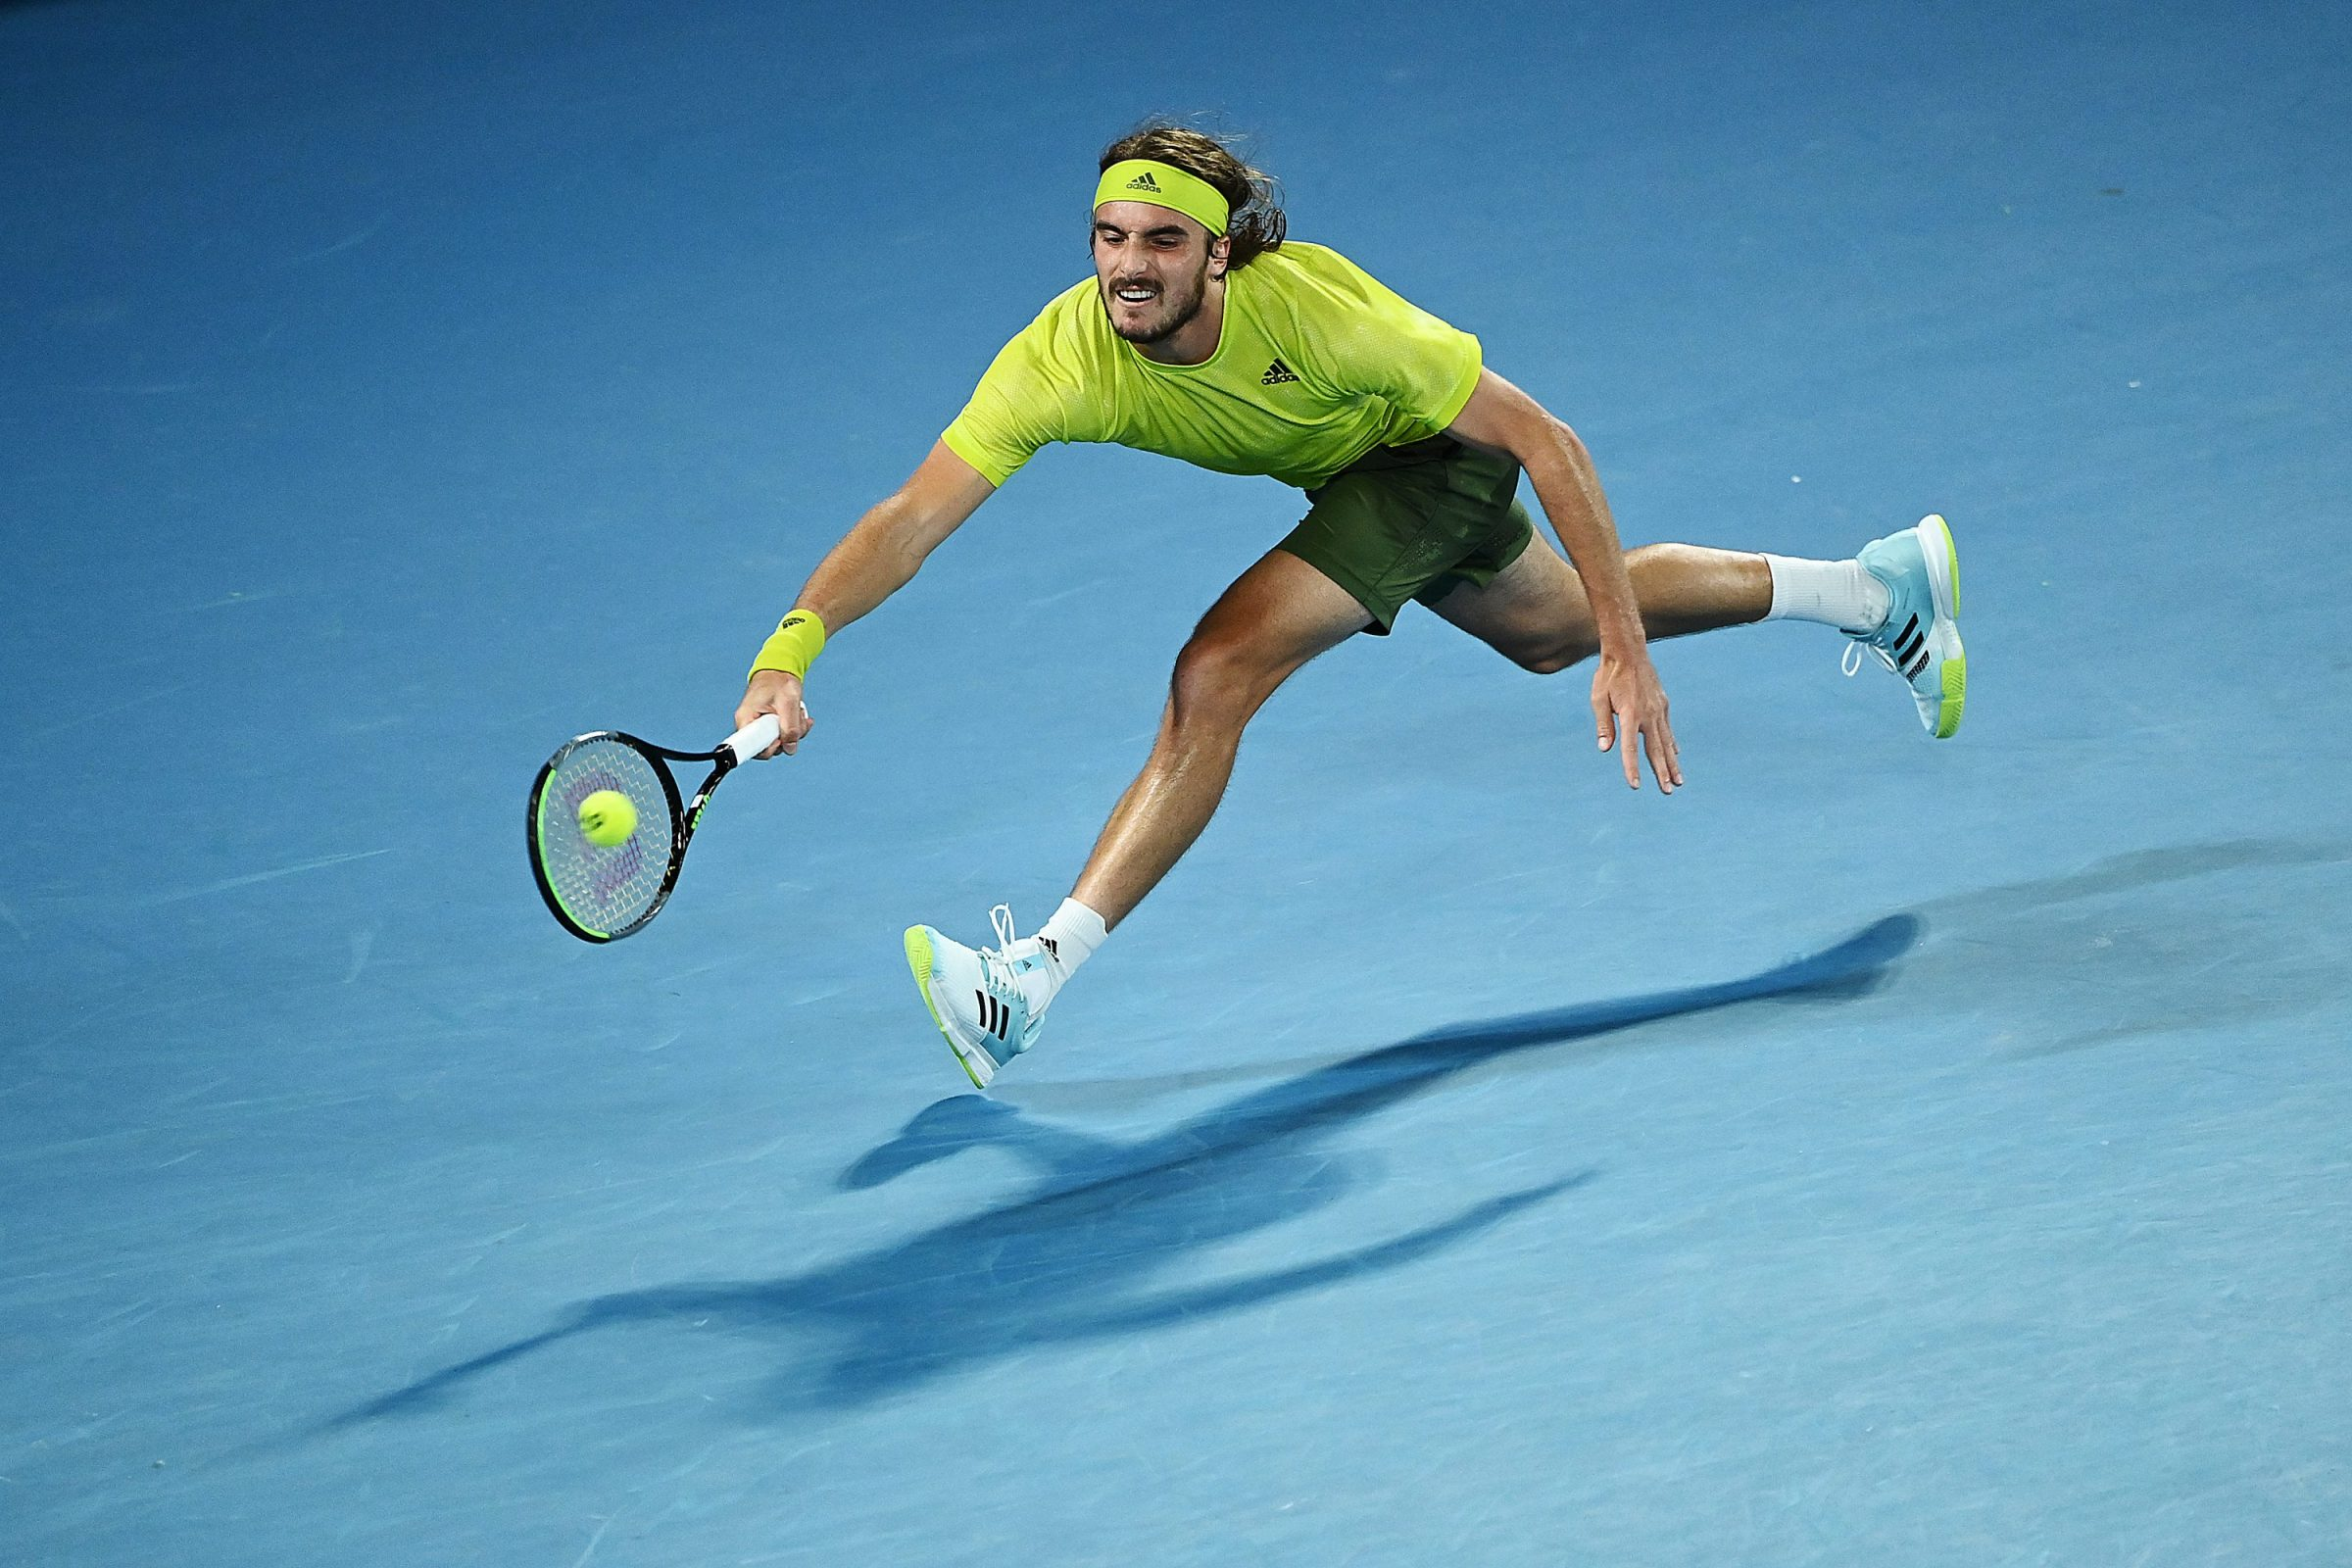 Stefanos Tsitsipas of Greece plays a forehand during his Men's Singles Quarterfinals match against Rafael Nadal of Spain during day 10 of the 2021 Australian Open at Melbourne Park on February 17, 2021 in Melbourne, Australia.